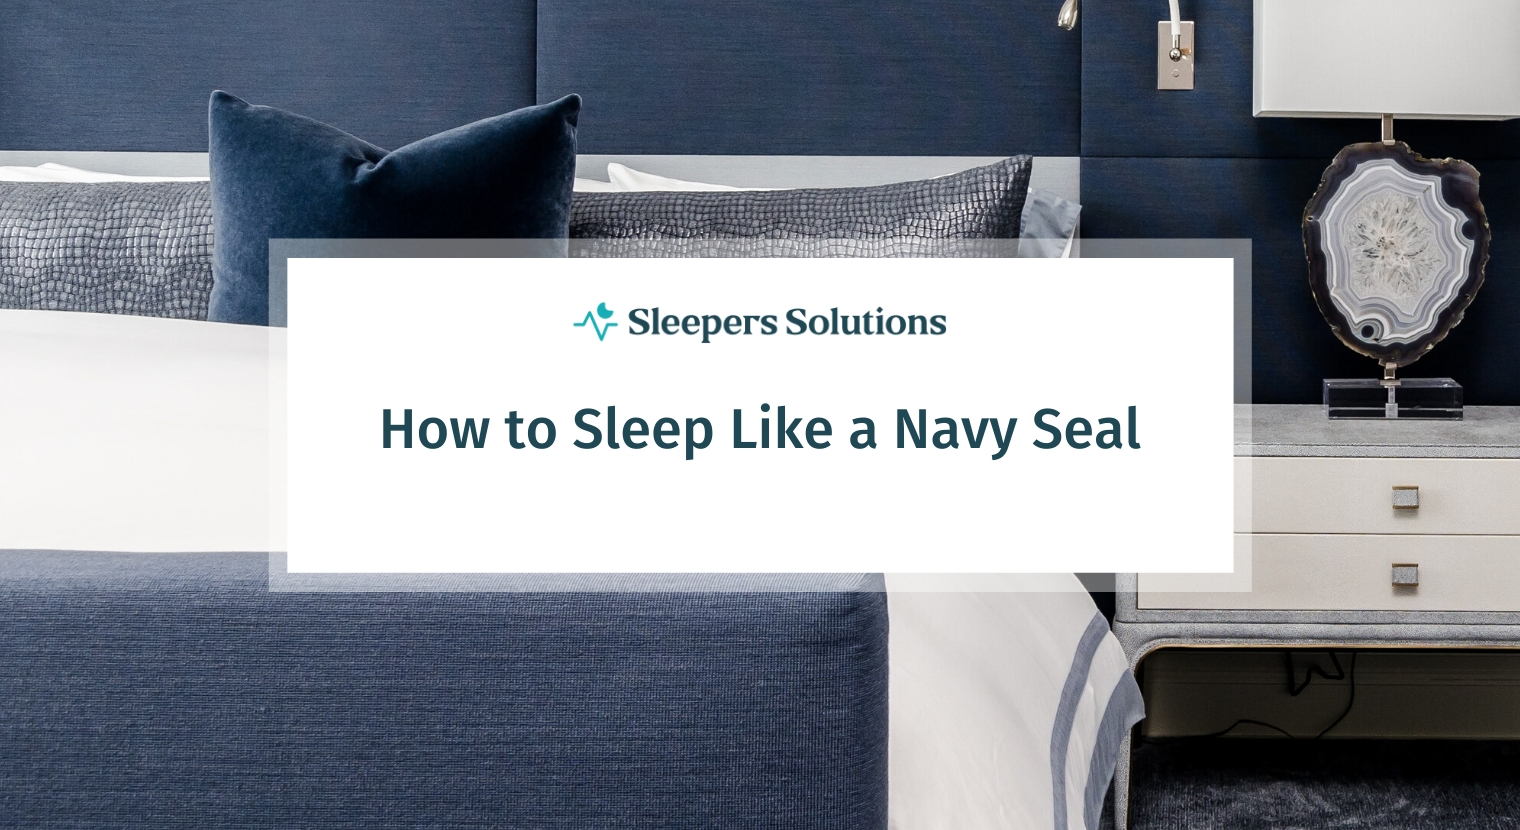 How to Sleep Like a Navy Seal